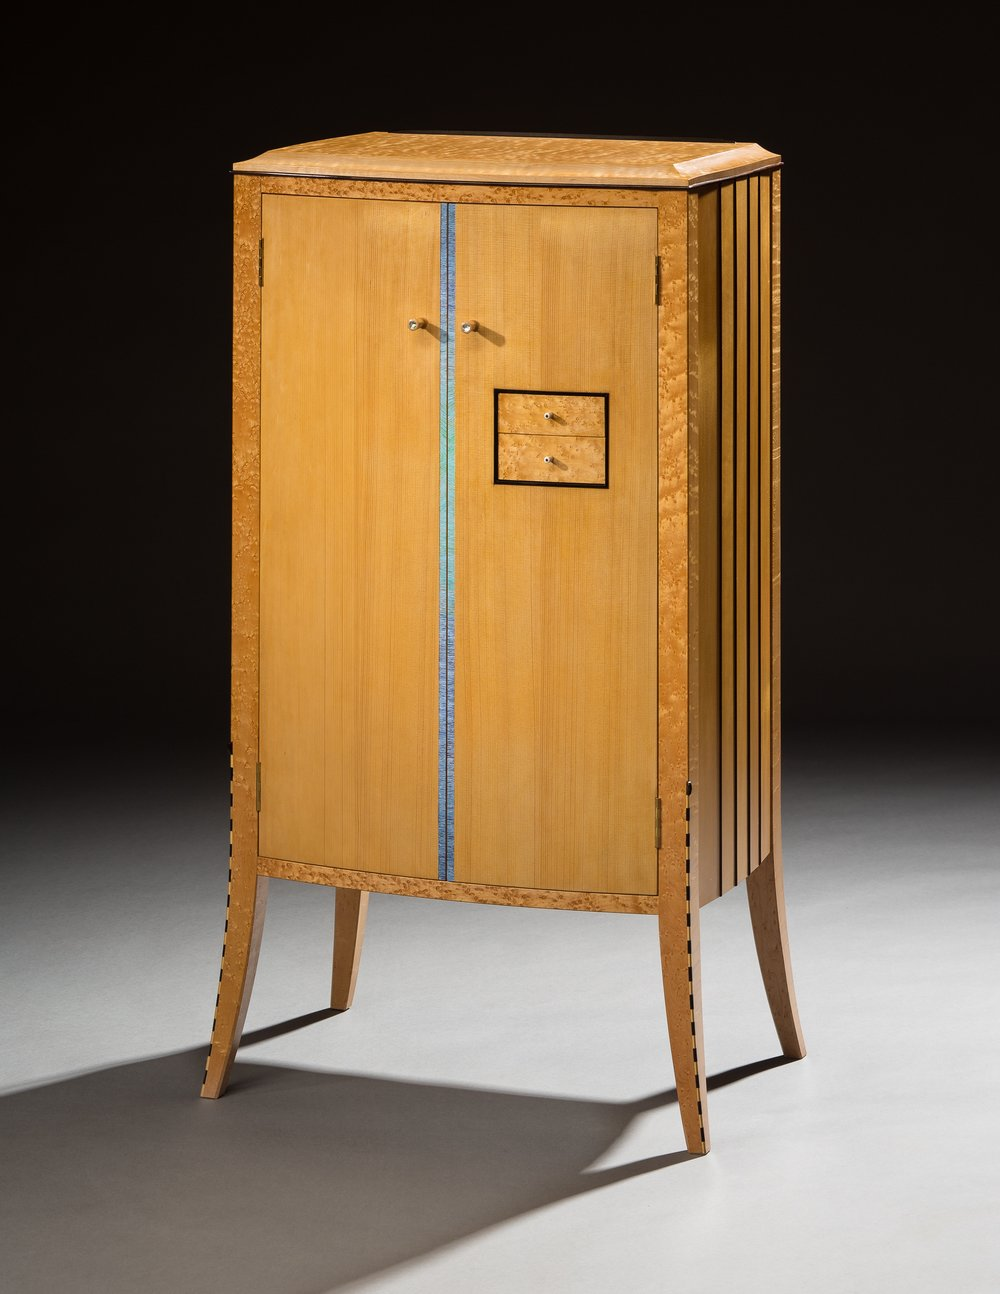 Duet, 2014, music cabinet in Engelman spruce, birdseye maple, ebony, poplar, paint details by Carolyn Hack